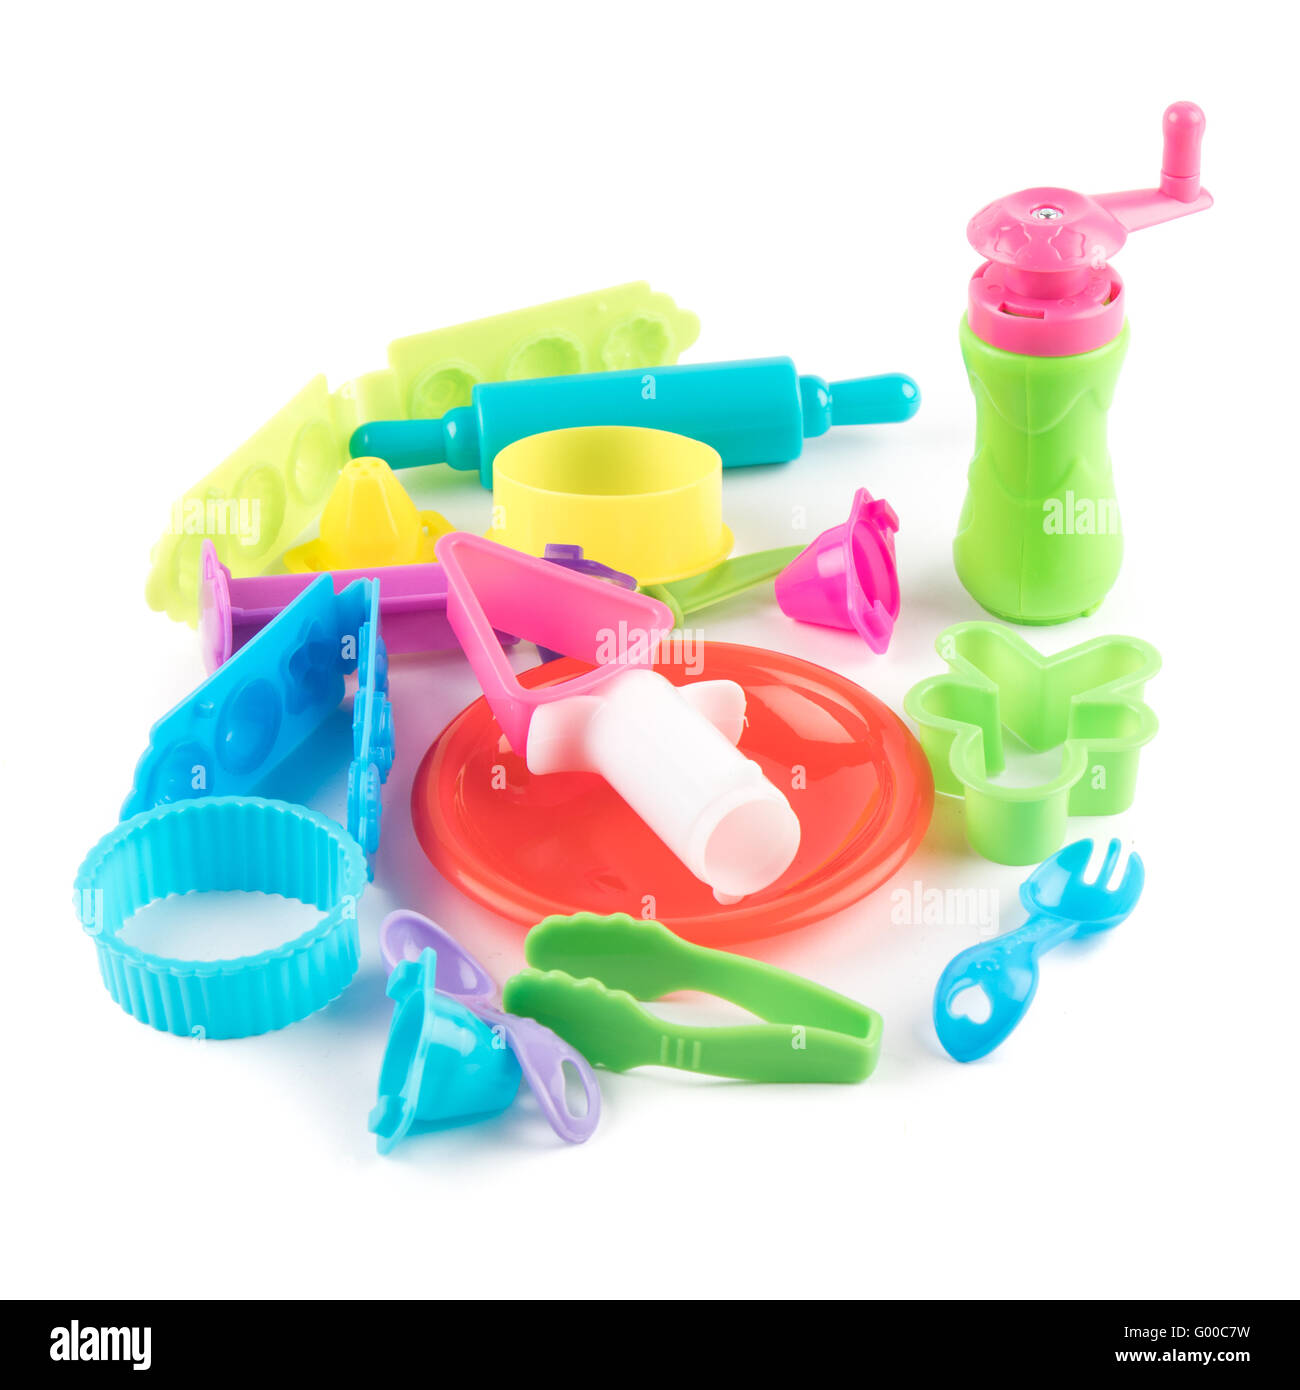 modelling creative set for children - Stock Image